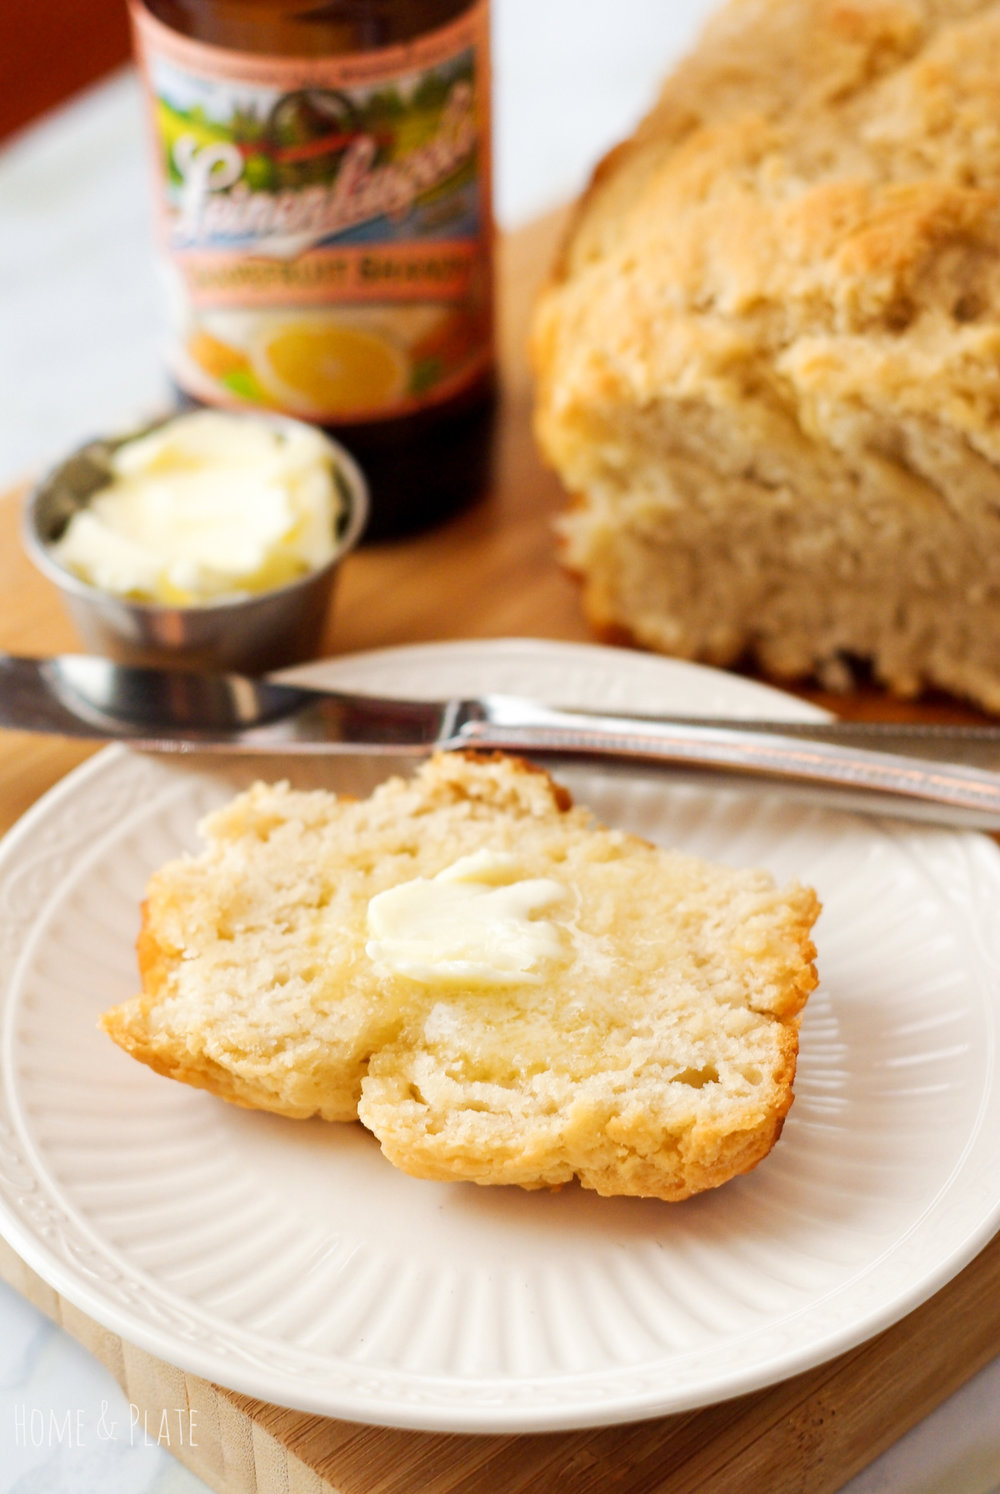 Grapefruit Honey Beer Bread | www.homeandplate.com | There is nothing better than sinking your teeth into a slice of soft homemade beer bread that tastes like grapefruit and honey.